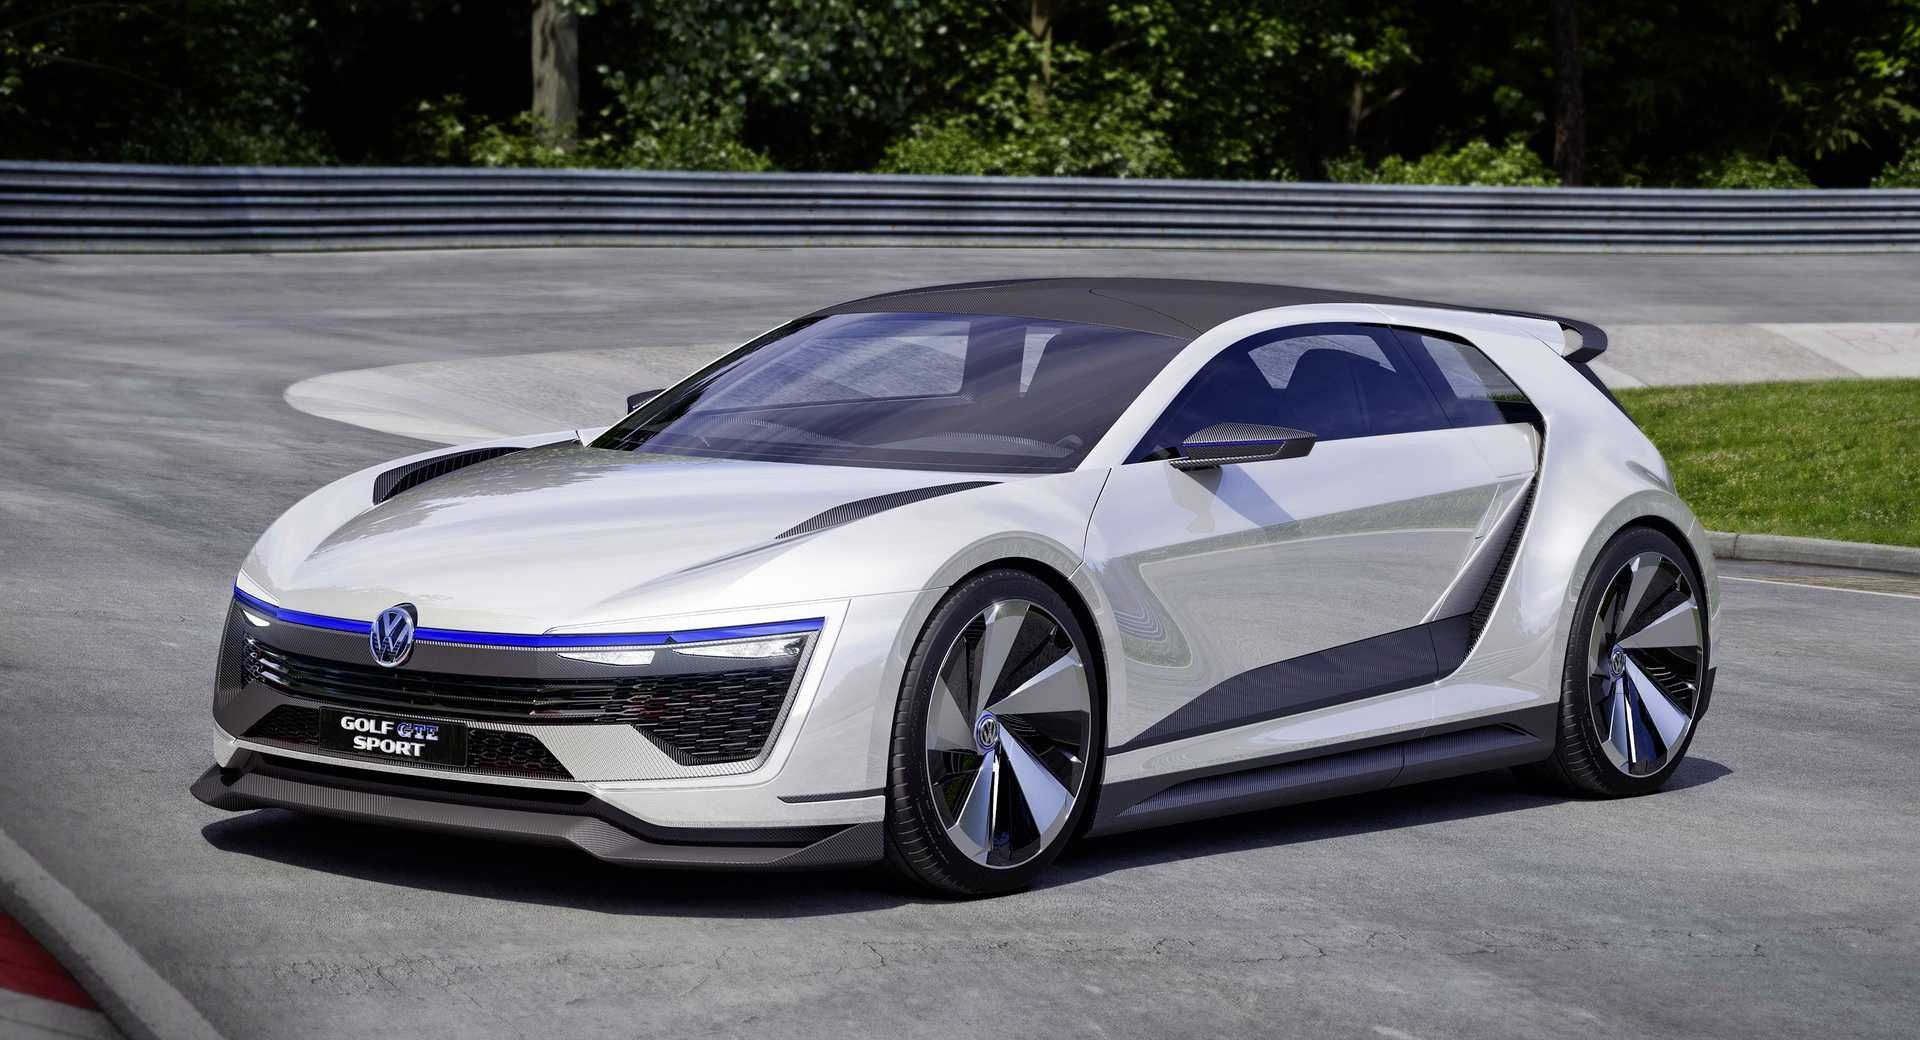 2020 Vw Golf R Going Extreme With 400 Hp And Hybrid Tech Carscoops Concept Cars Volkswagen Golf Vw Golf